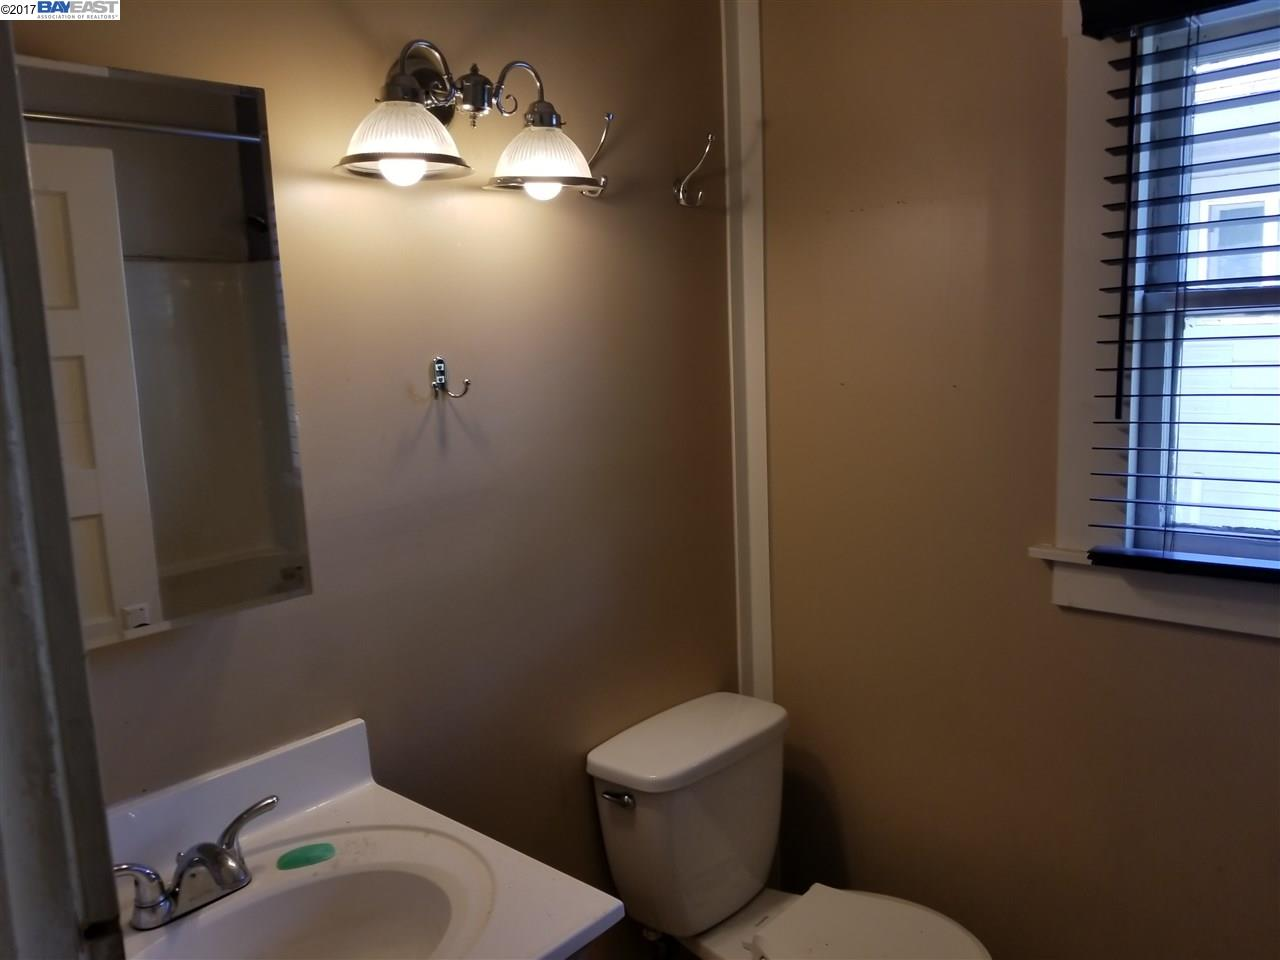 Additional photo for property listing at 1378 B Street  Hayward, カリフォルニア 94541 アメリカ合衆国